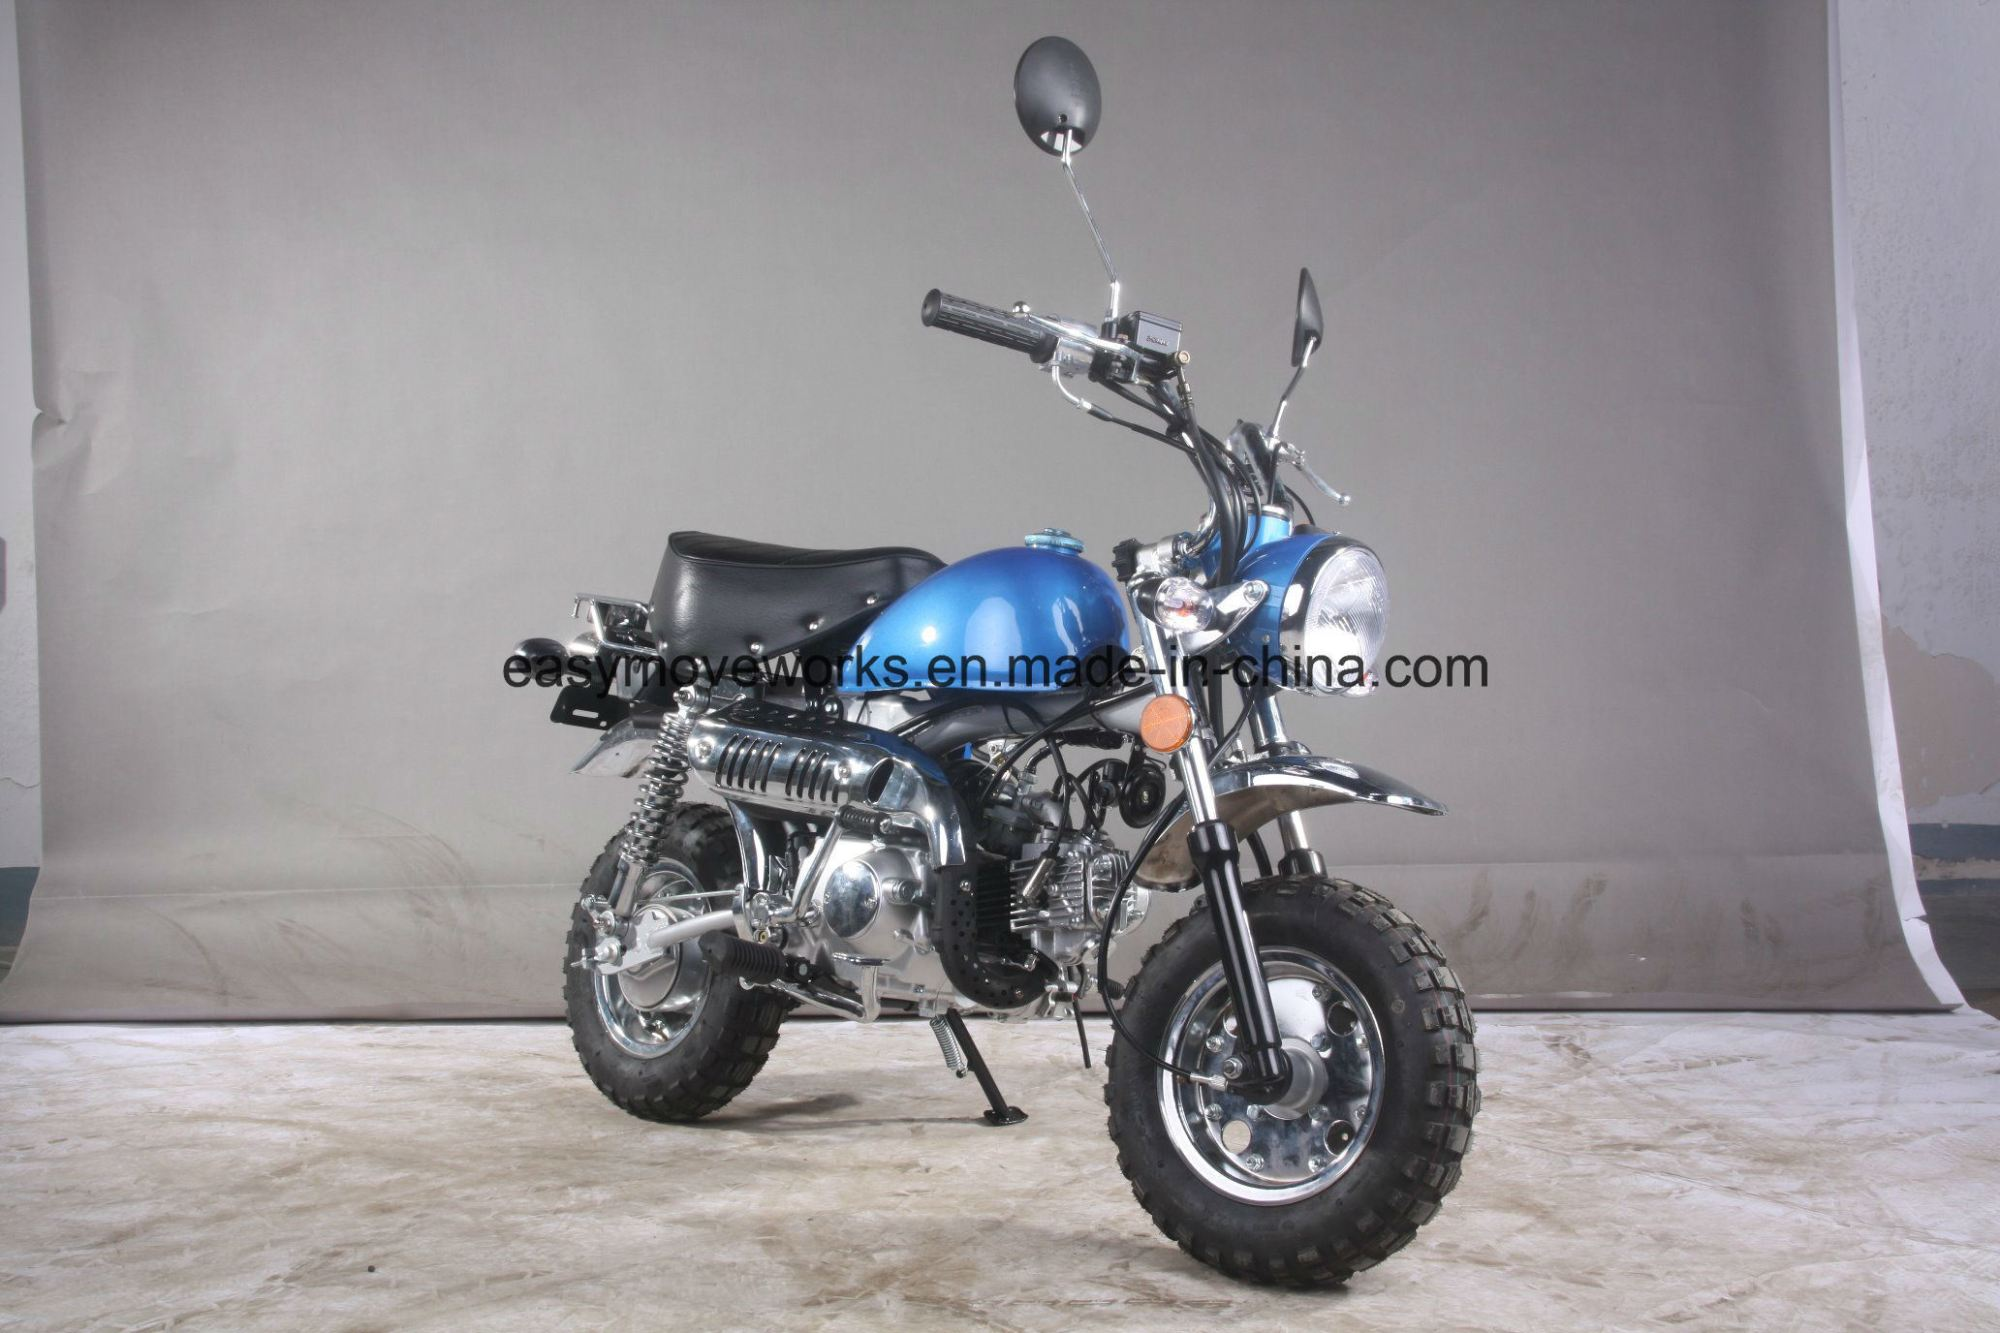 hight resolution of china zhenhua classic motorcycle monkey bike 50cc euro4 efi china motorcycle electric motorcycle